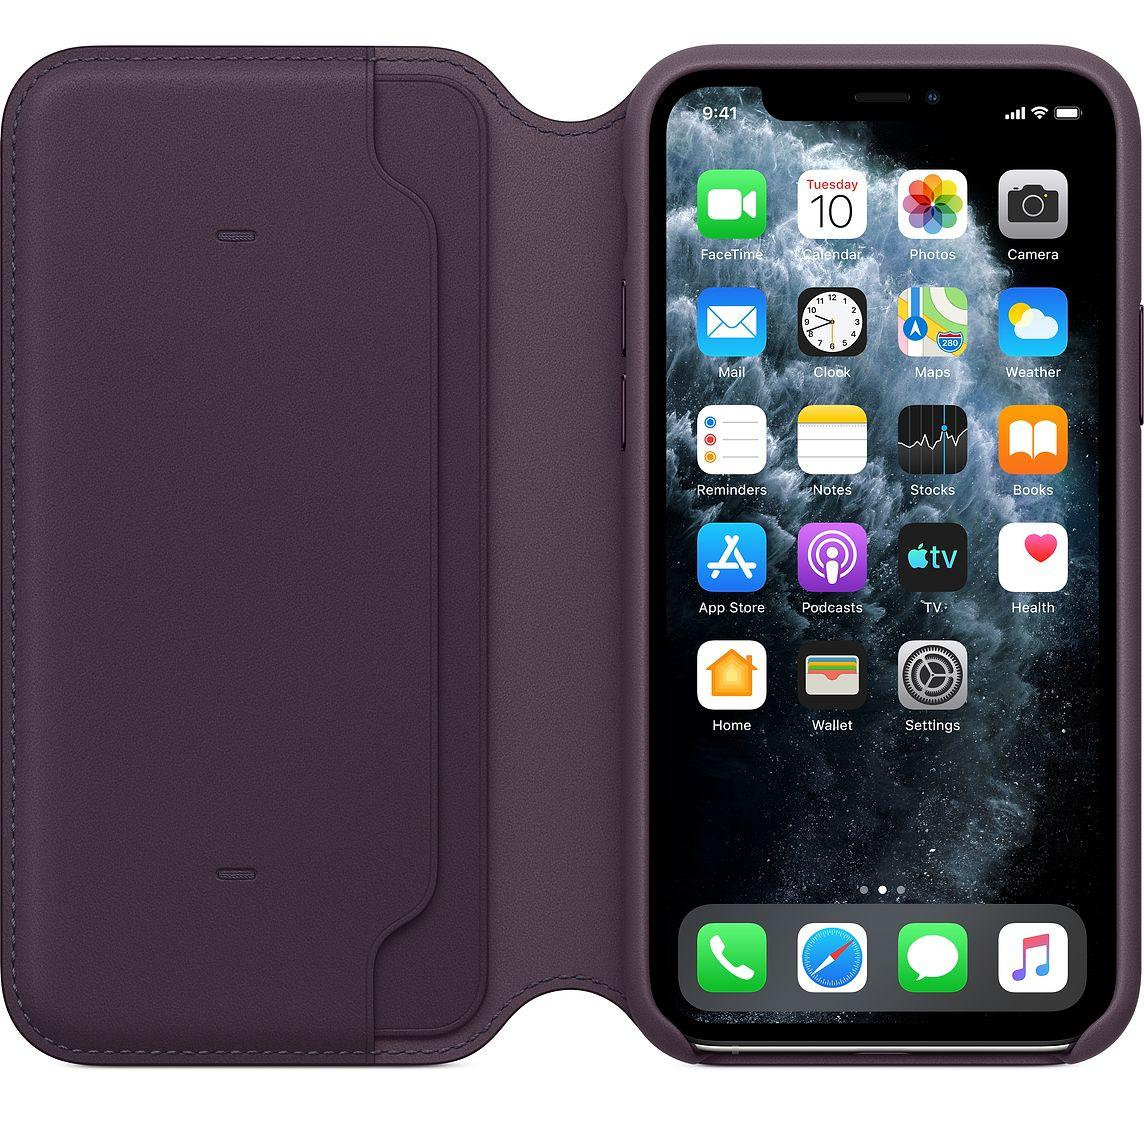 How to choose an iPhone case and Apple Watch strap